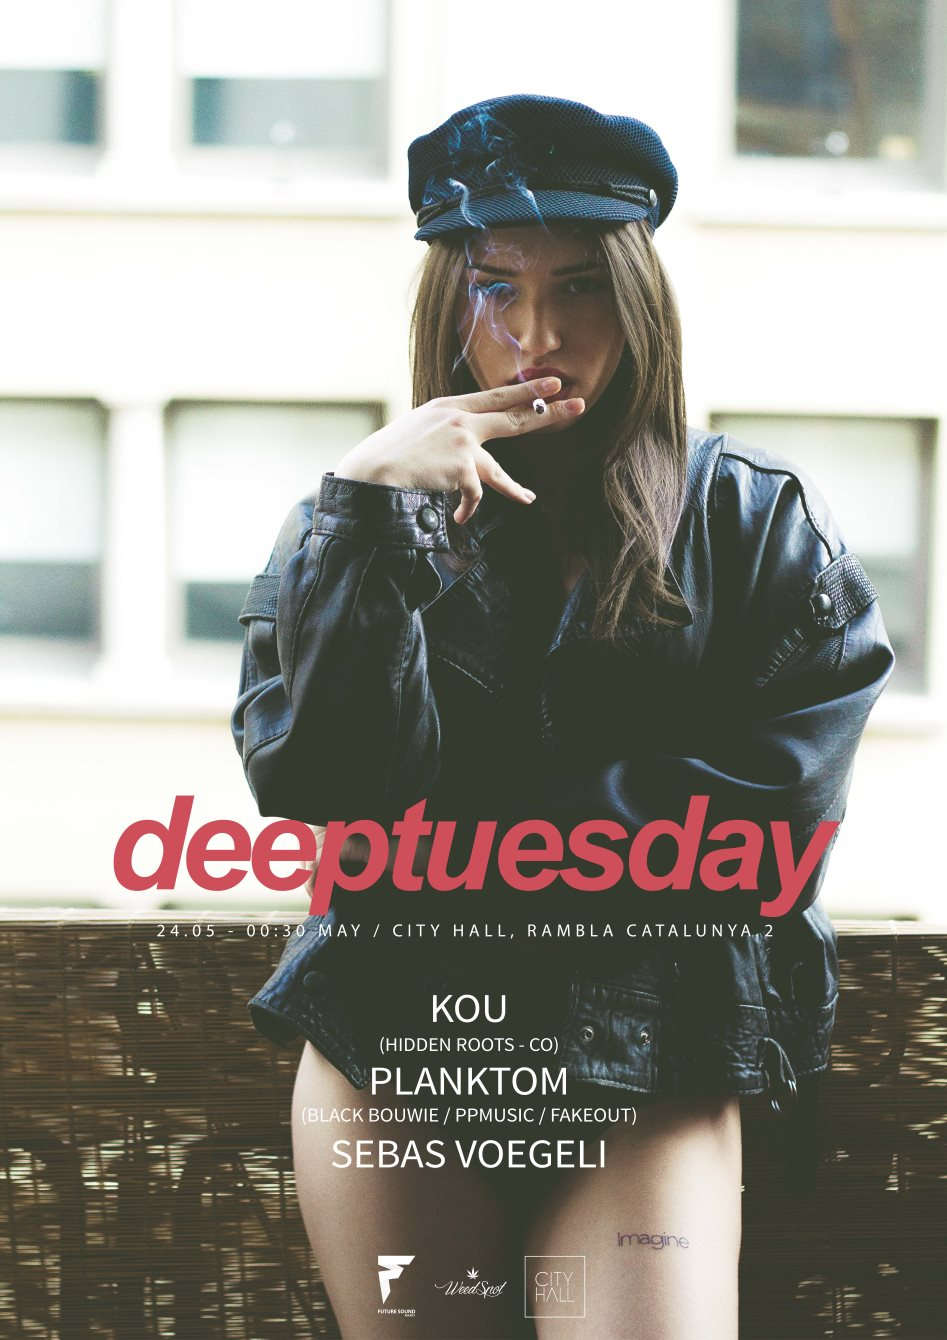 Page 1 | 24 May 2016 | Barcelona | Deeptuesday at City Hall. Published by DjMaverix on Monday, 23 May 2016 in Clubs and Discoteque (Events)